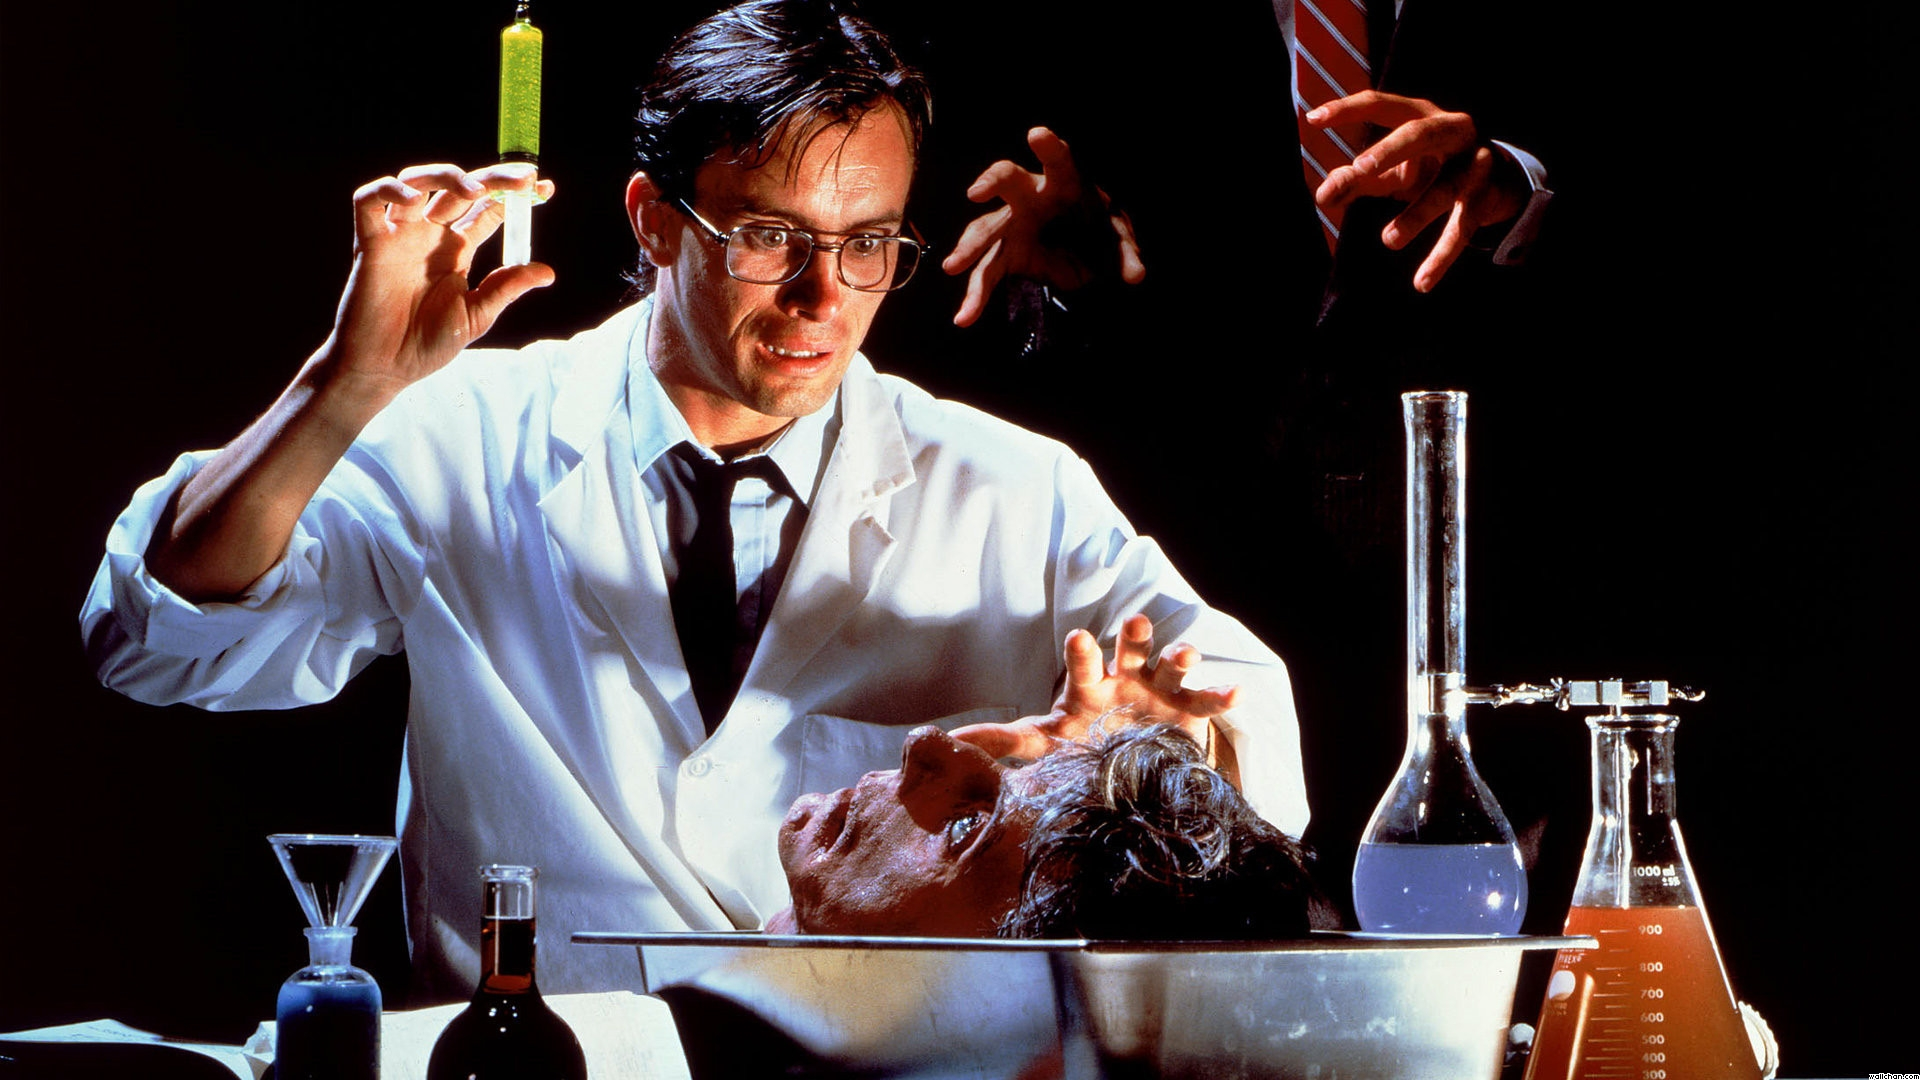 8. H.P. Lovecraft's Re-Animator - Richard Band